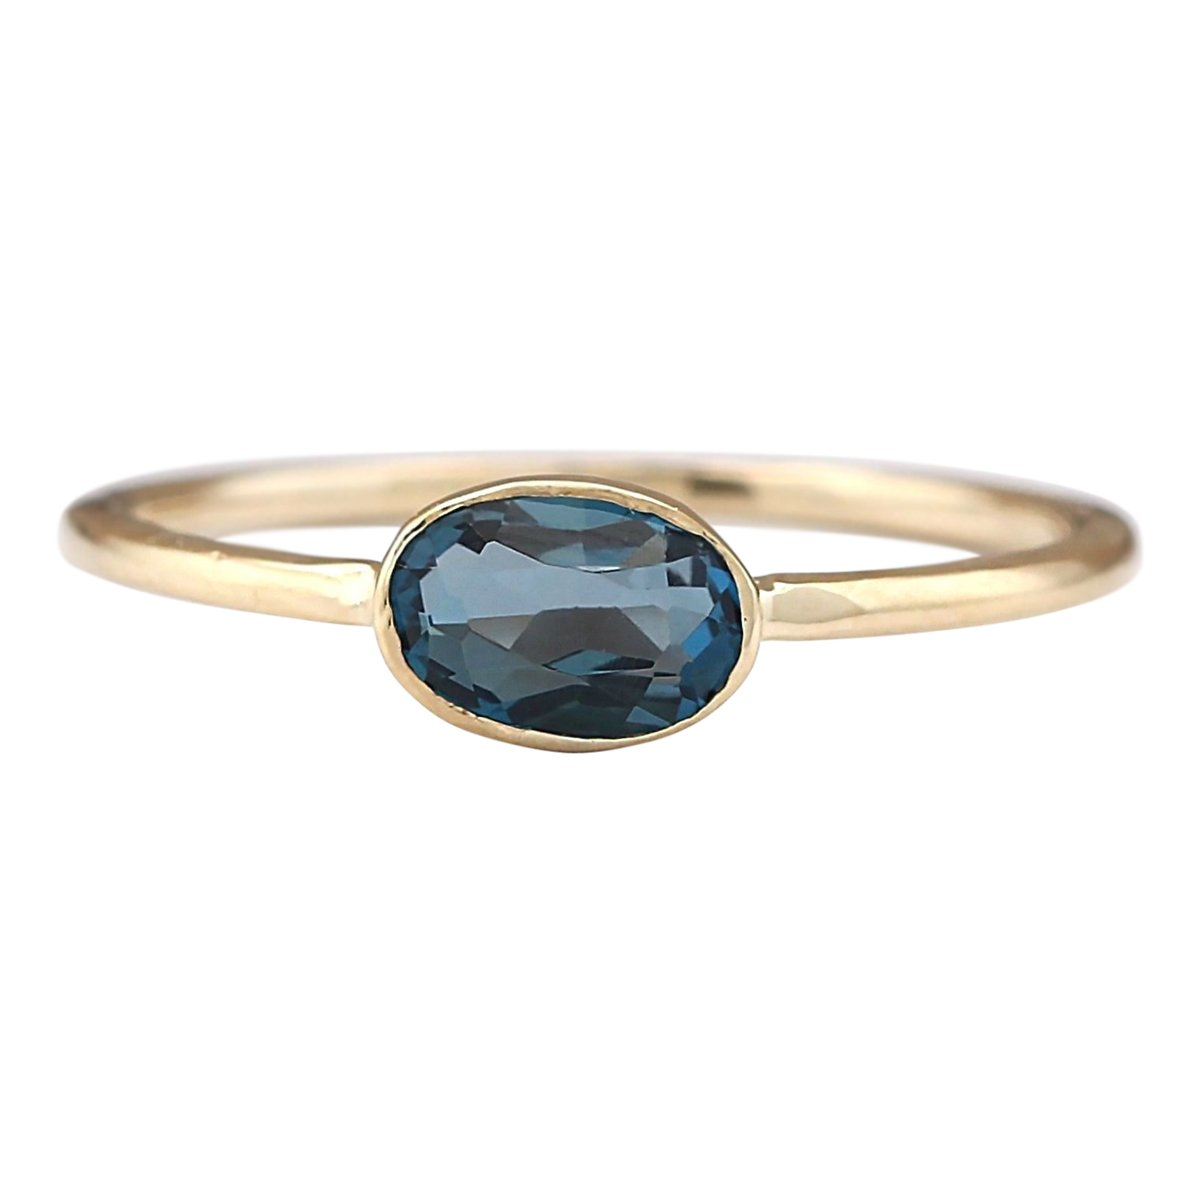 0.6 Carat Natural London Blue Topaz 14K Yellow Gold Solitaire Promise Ring for Women